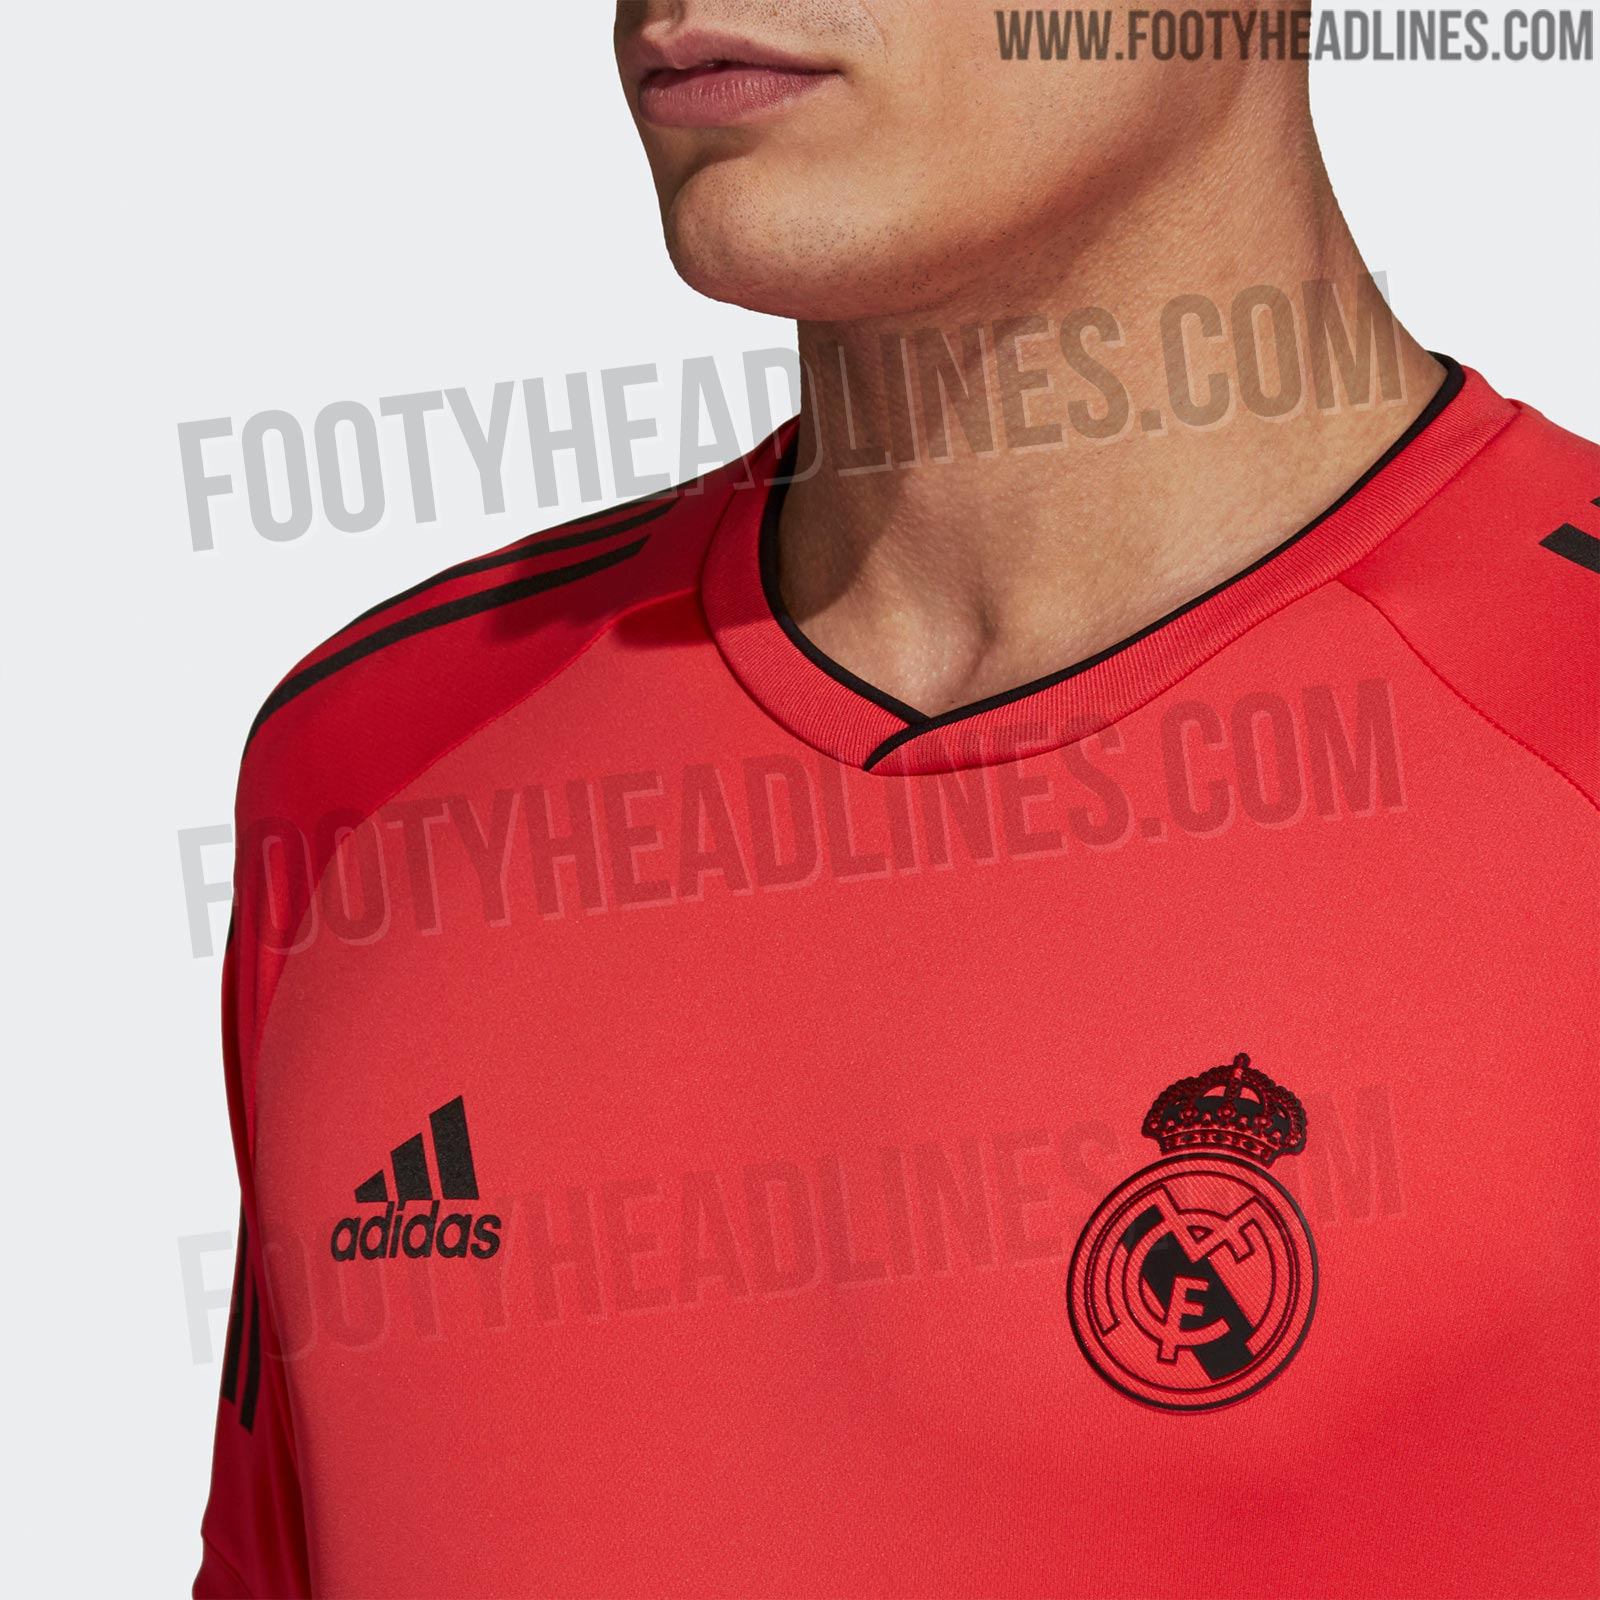 The second Adidas Real Madrid 2018-2019 UEFA Champions League training  jersey inverts the colors of the first one - it is black and red. 9c8852af0